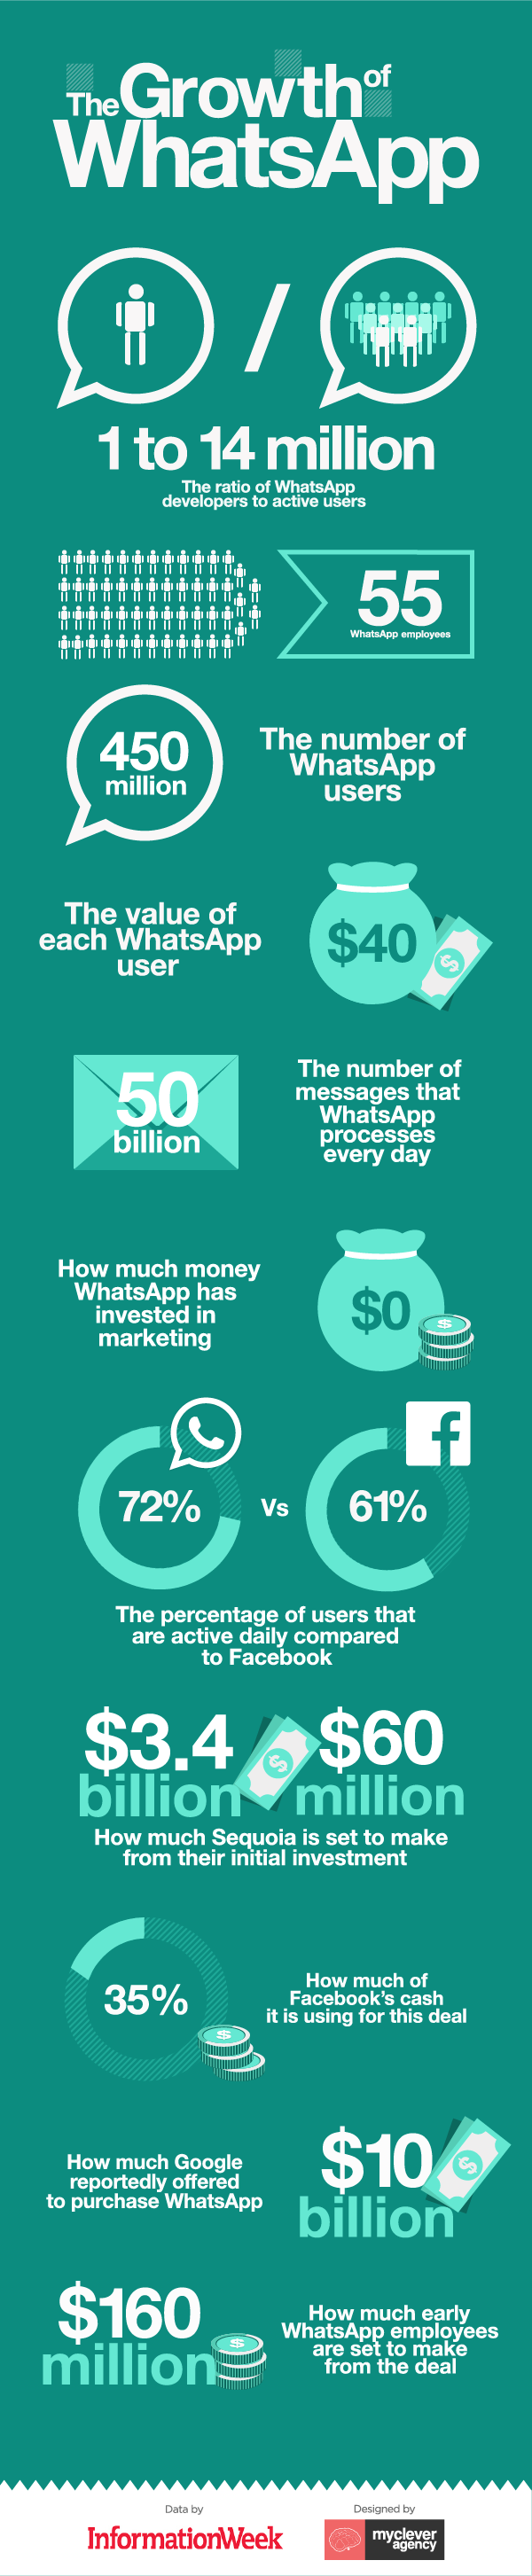 The-Growth-of-WhatsApp-Infographic